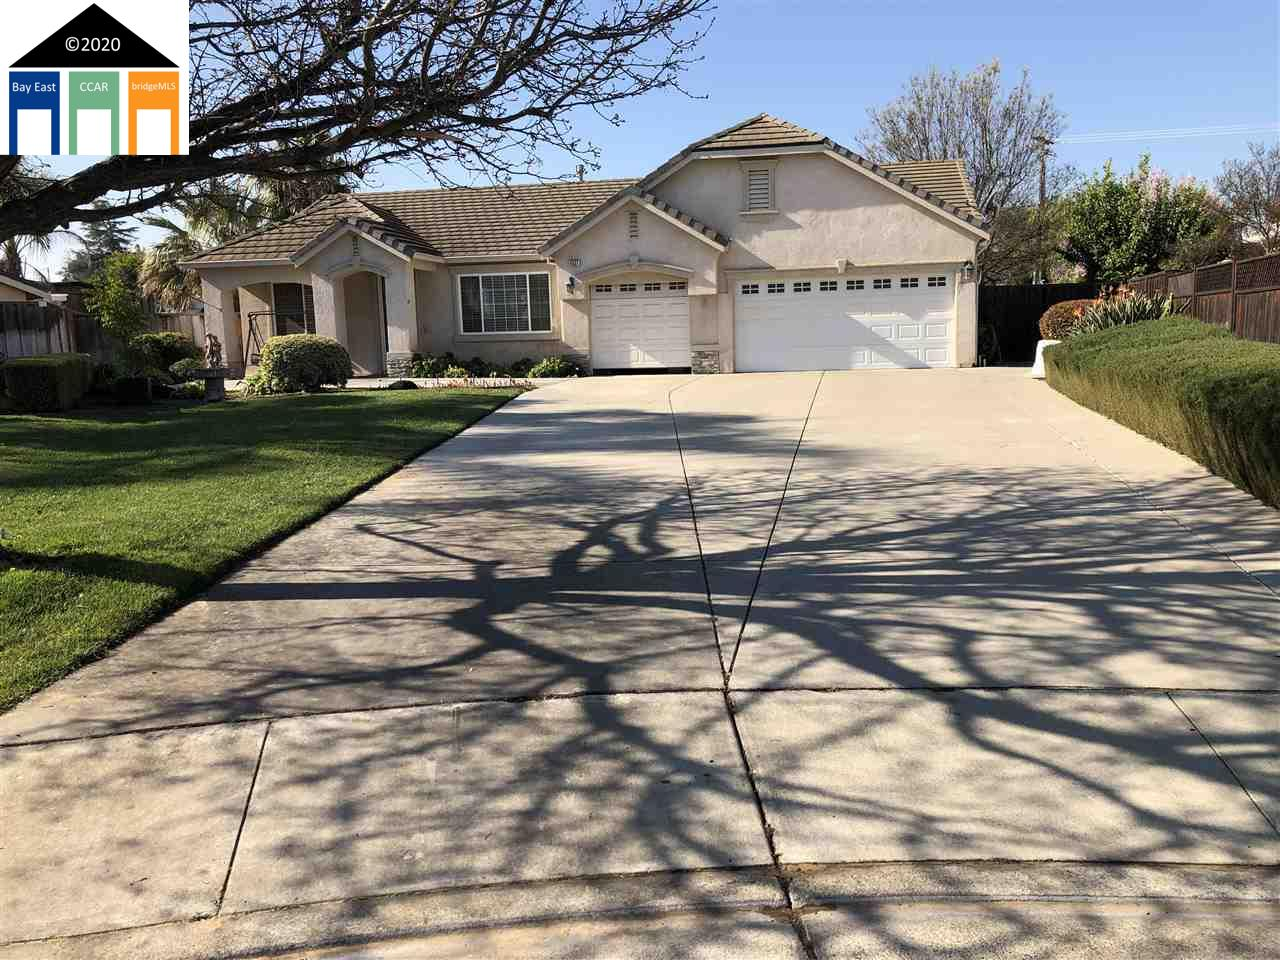 4527 Orchard Oaks Ct, OAKLEY, CA 94561